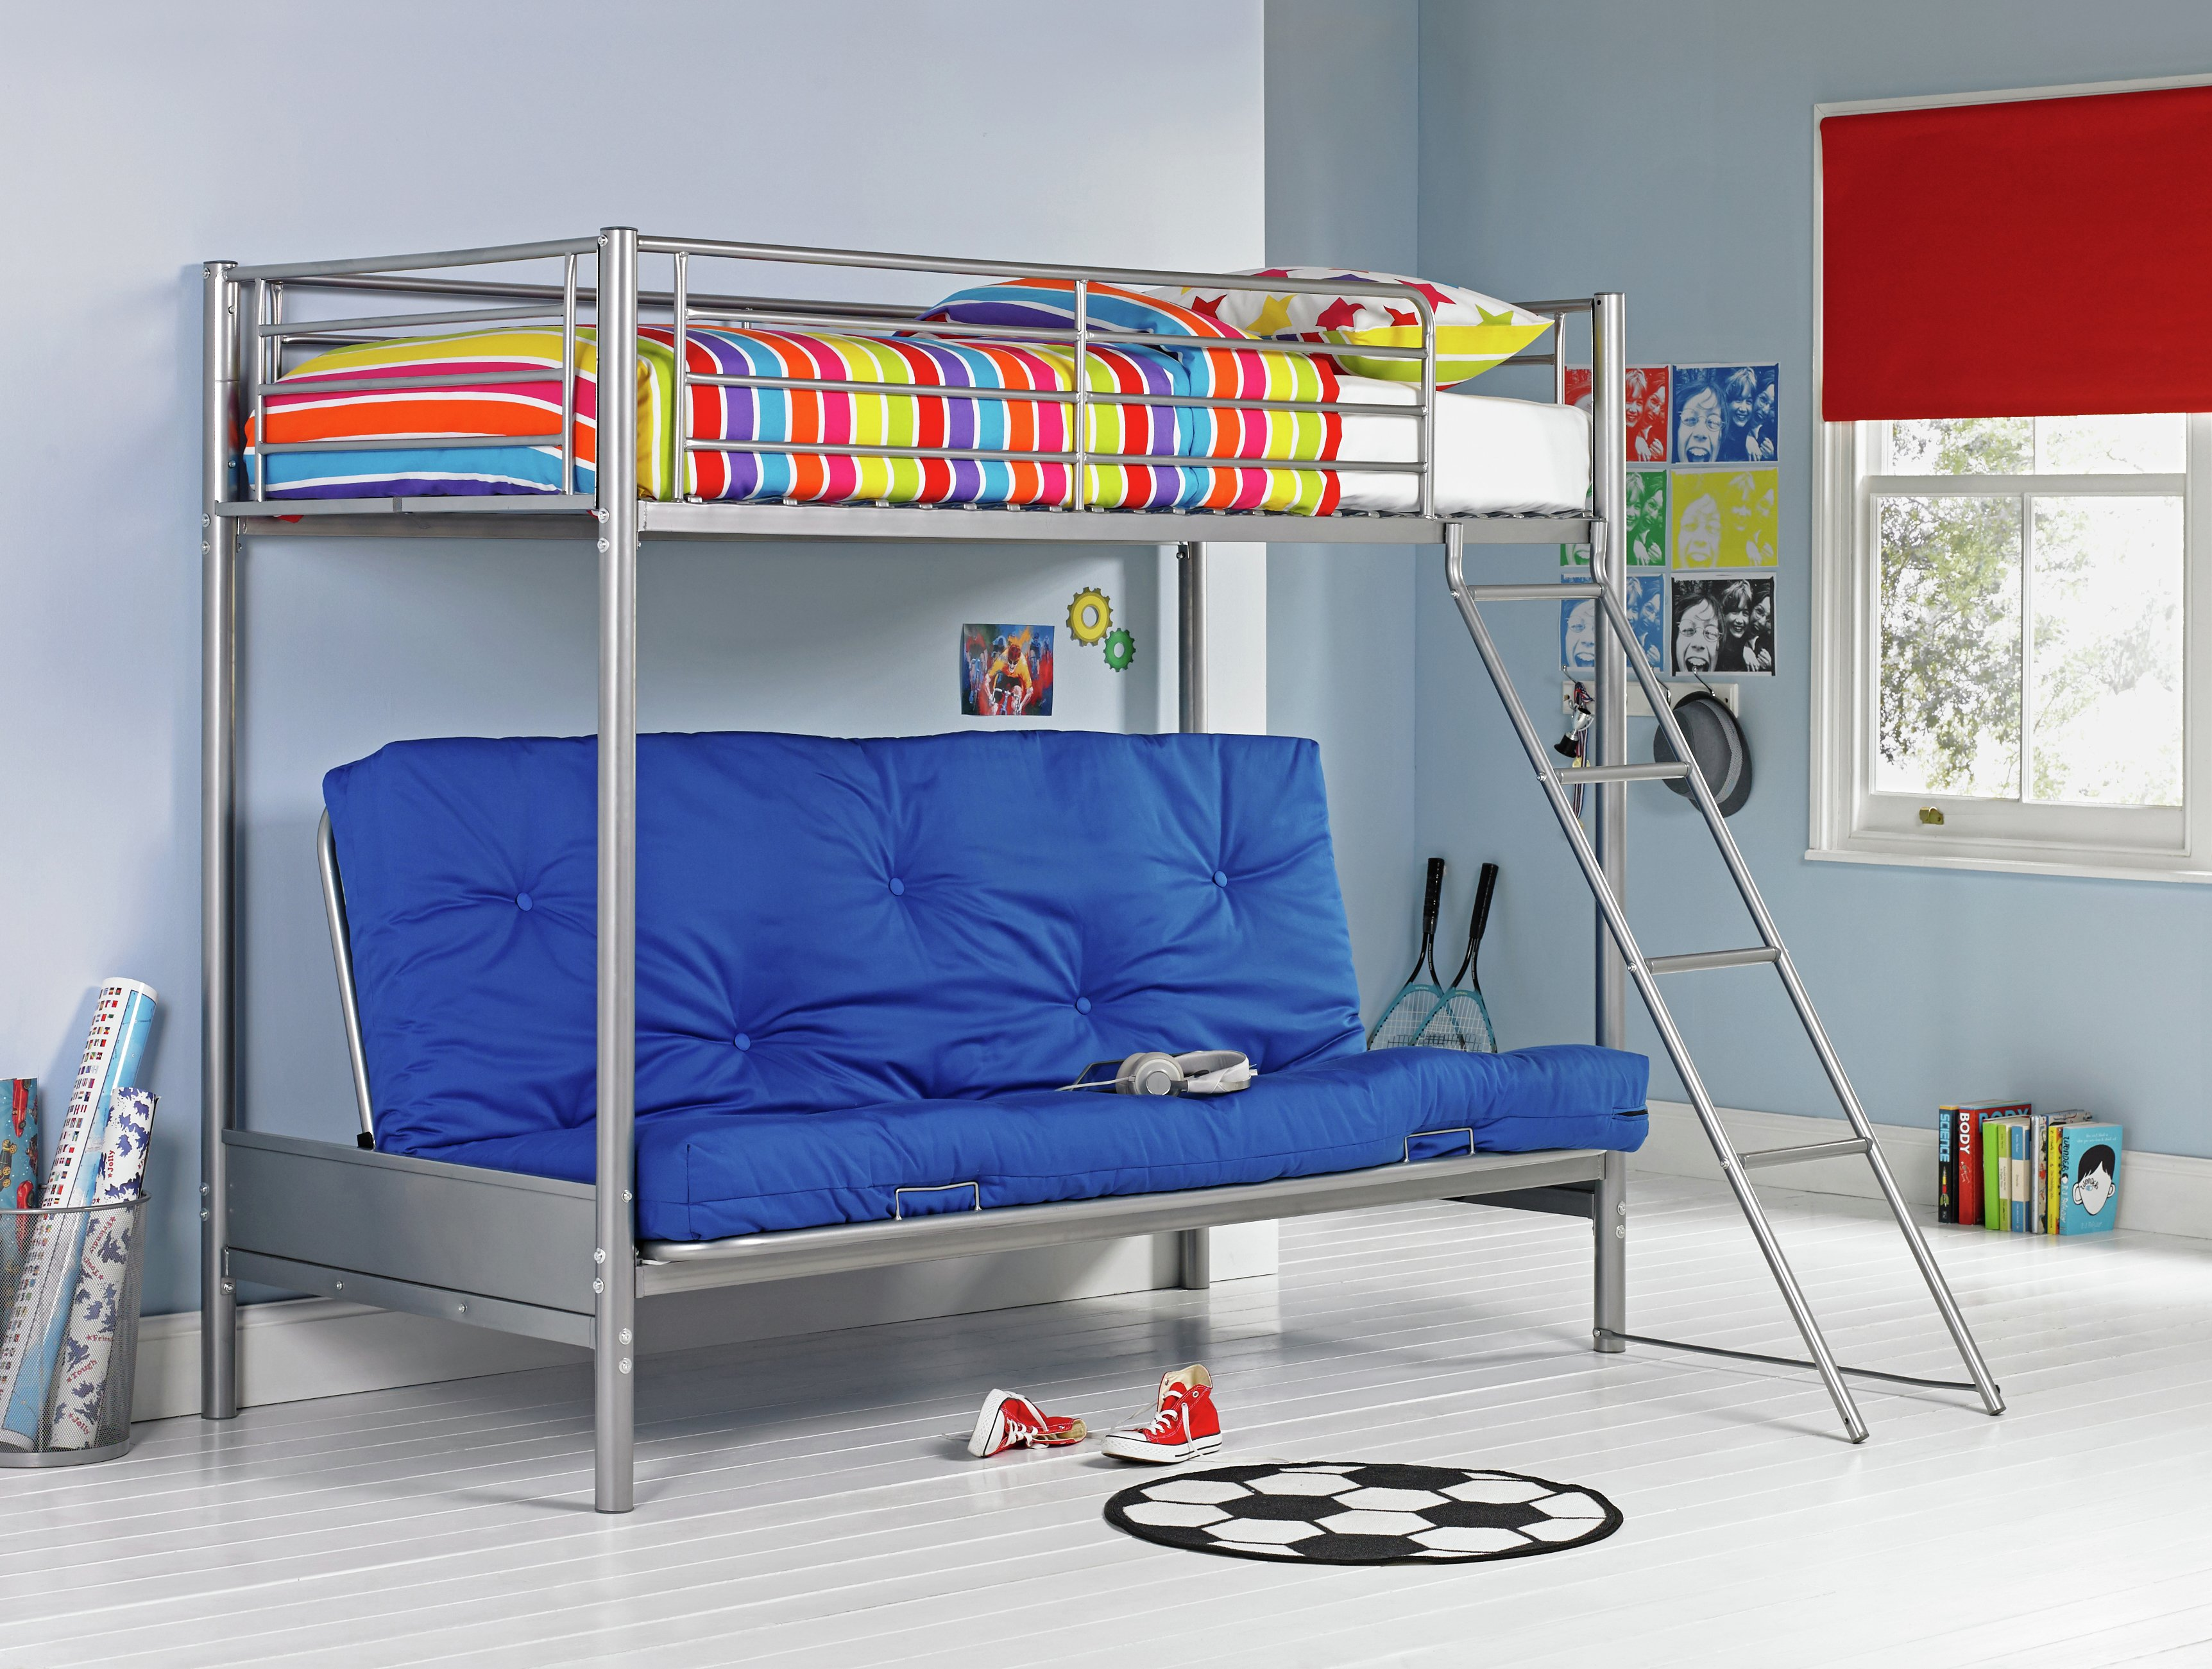 Argos Home Metal Bunk Bed Frame with Blue Futon